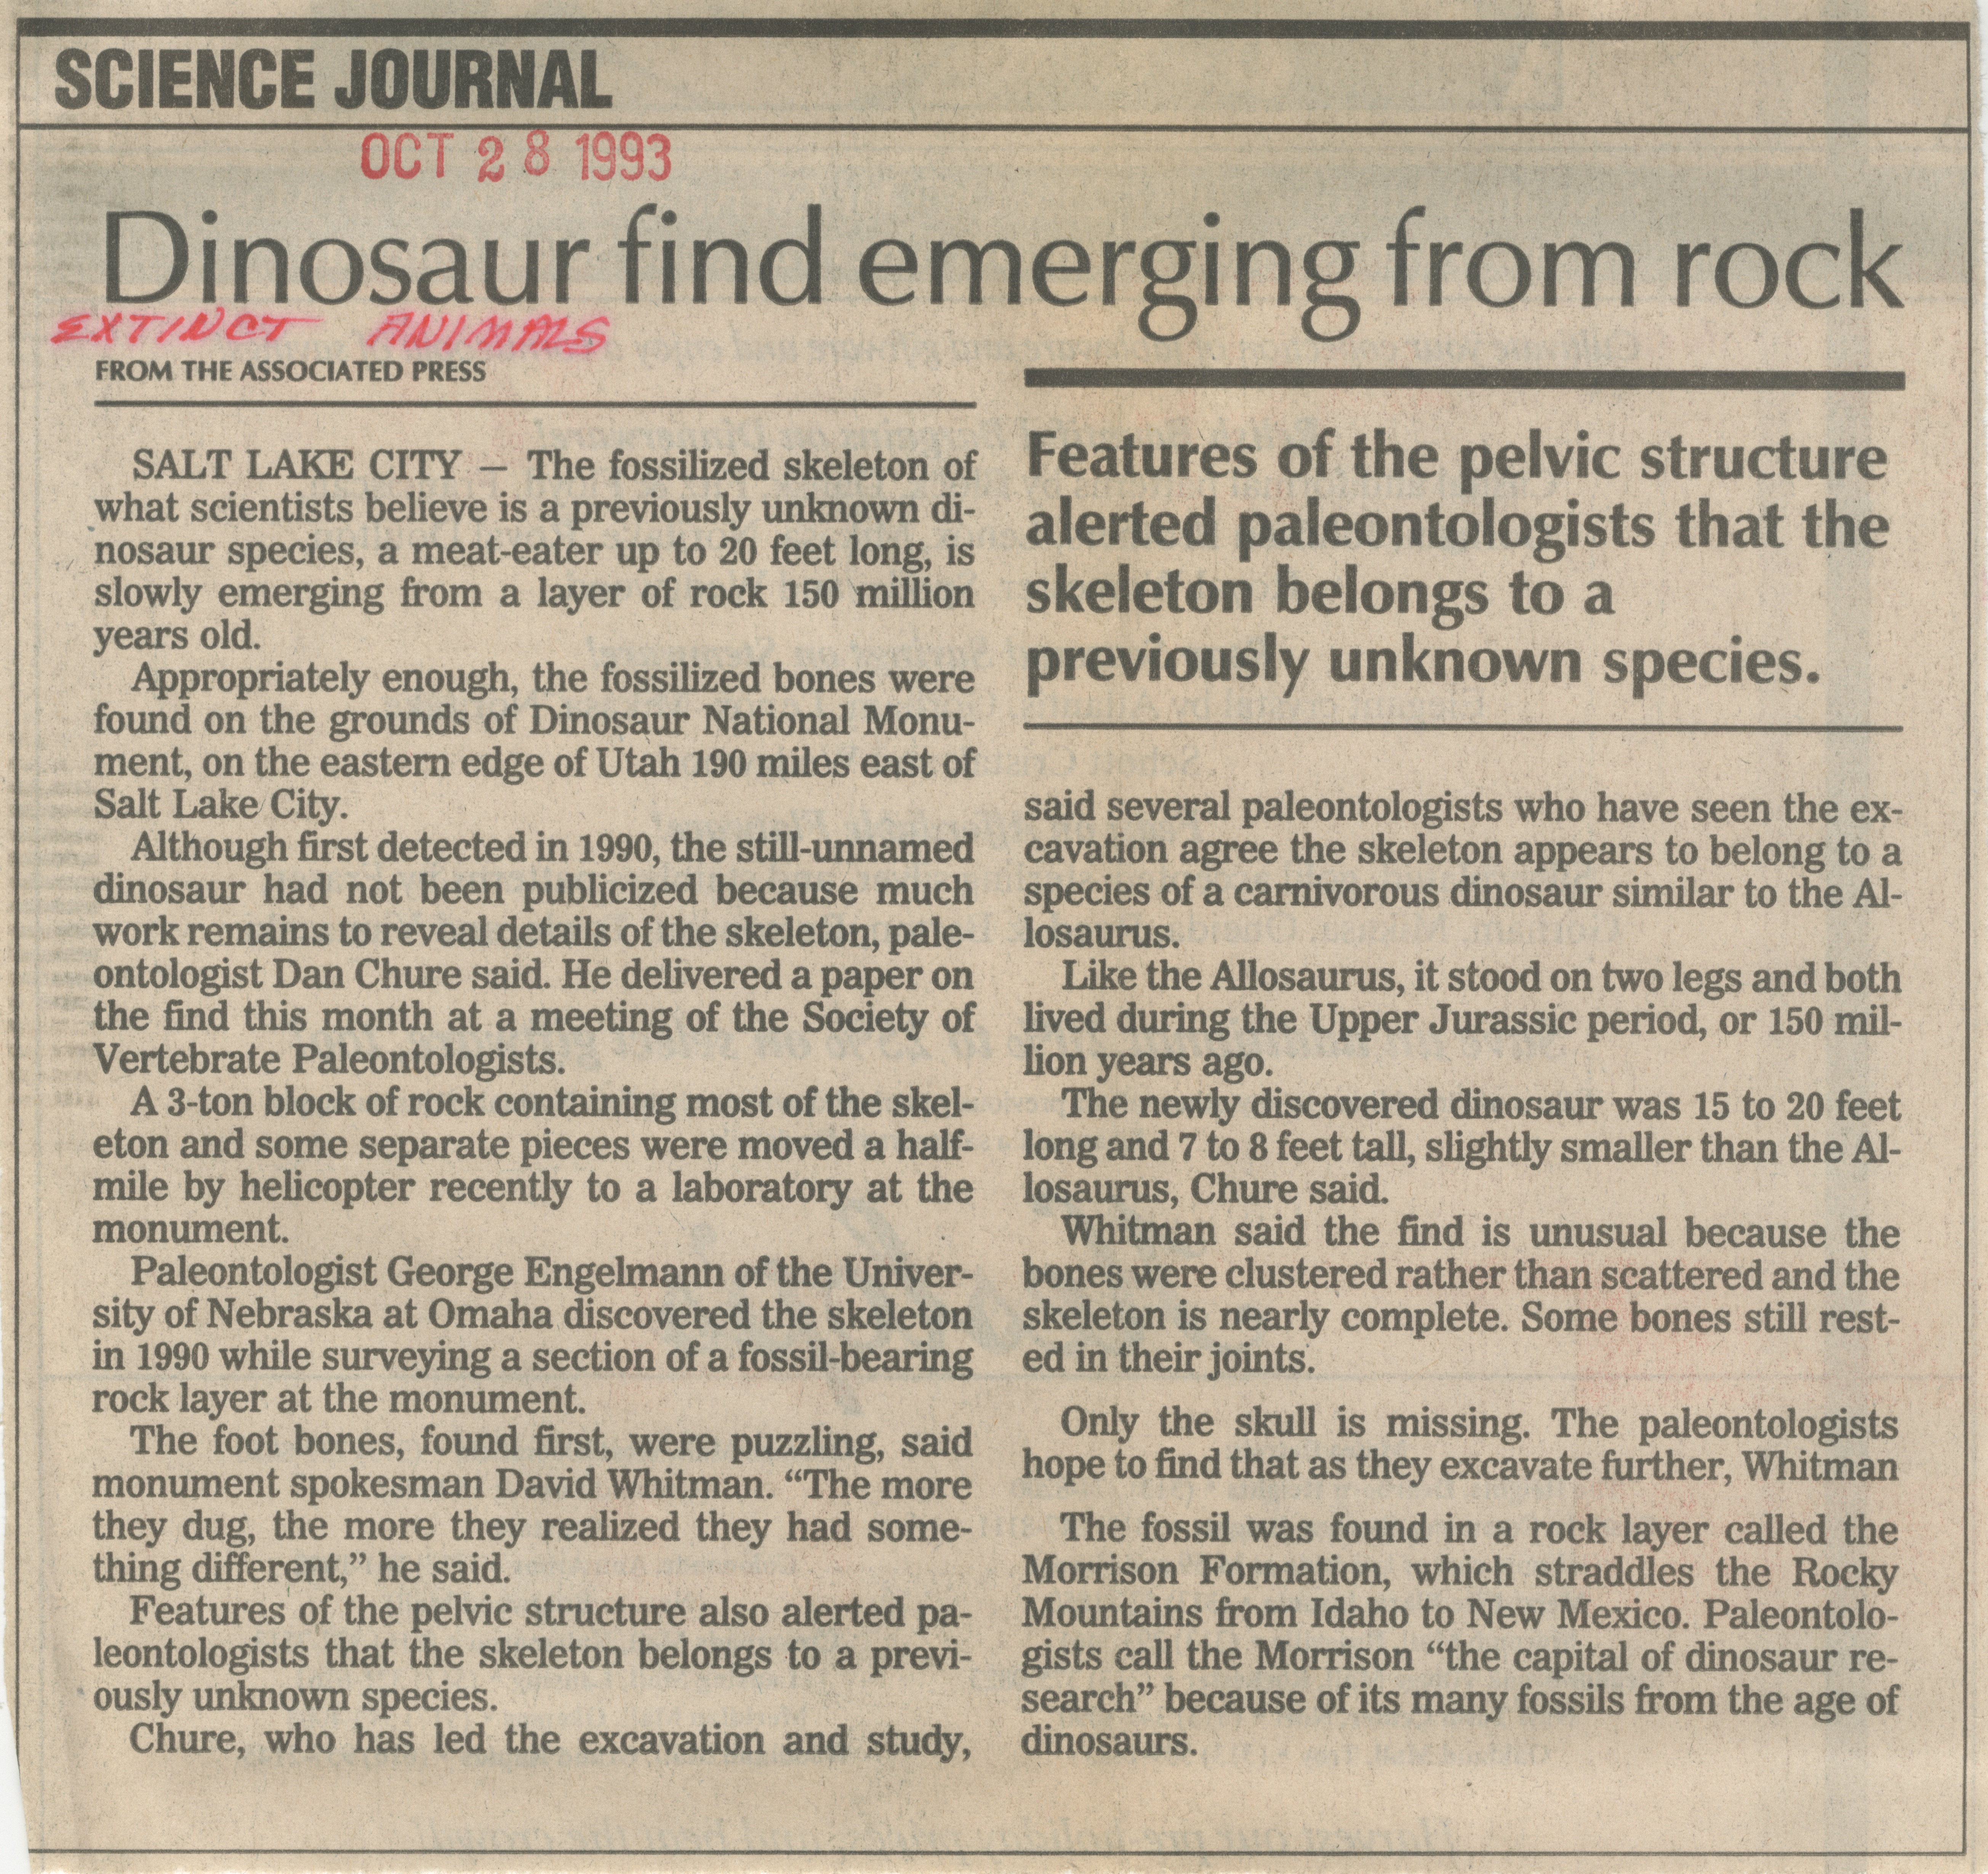 Dinosaur Find Emerging From Rock image